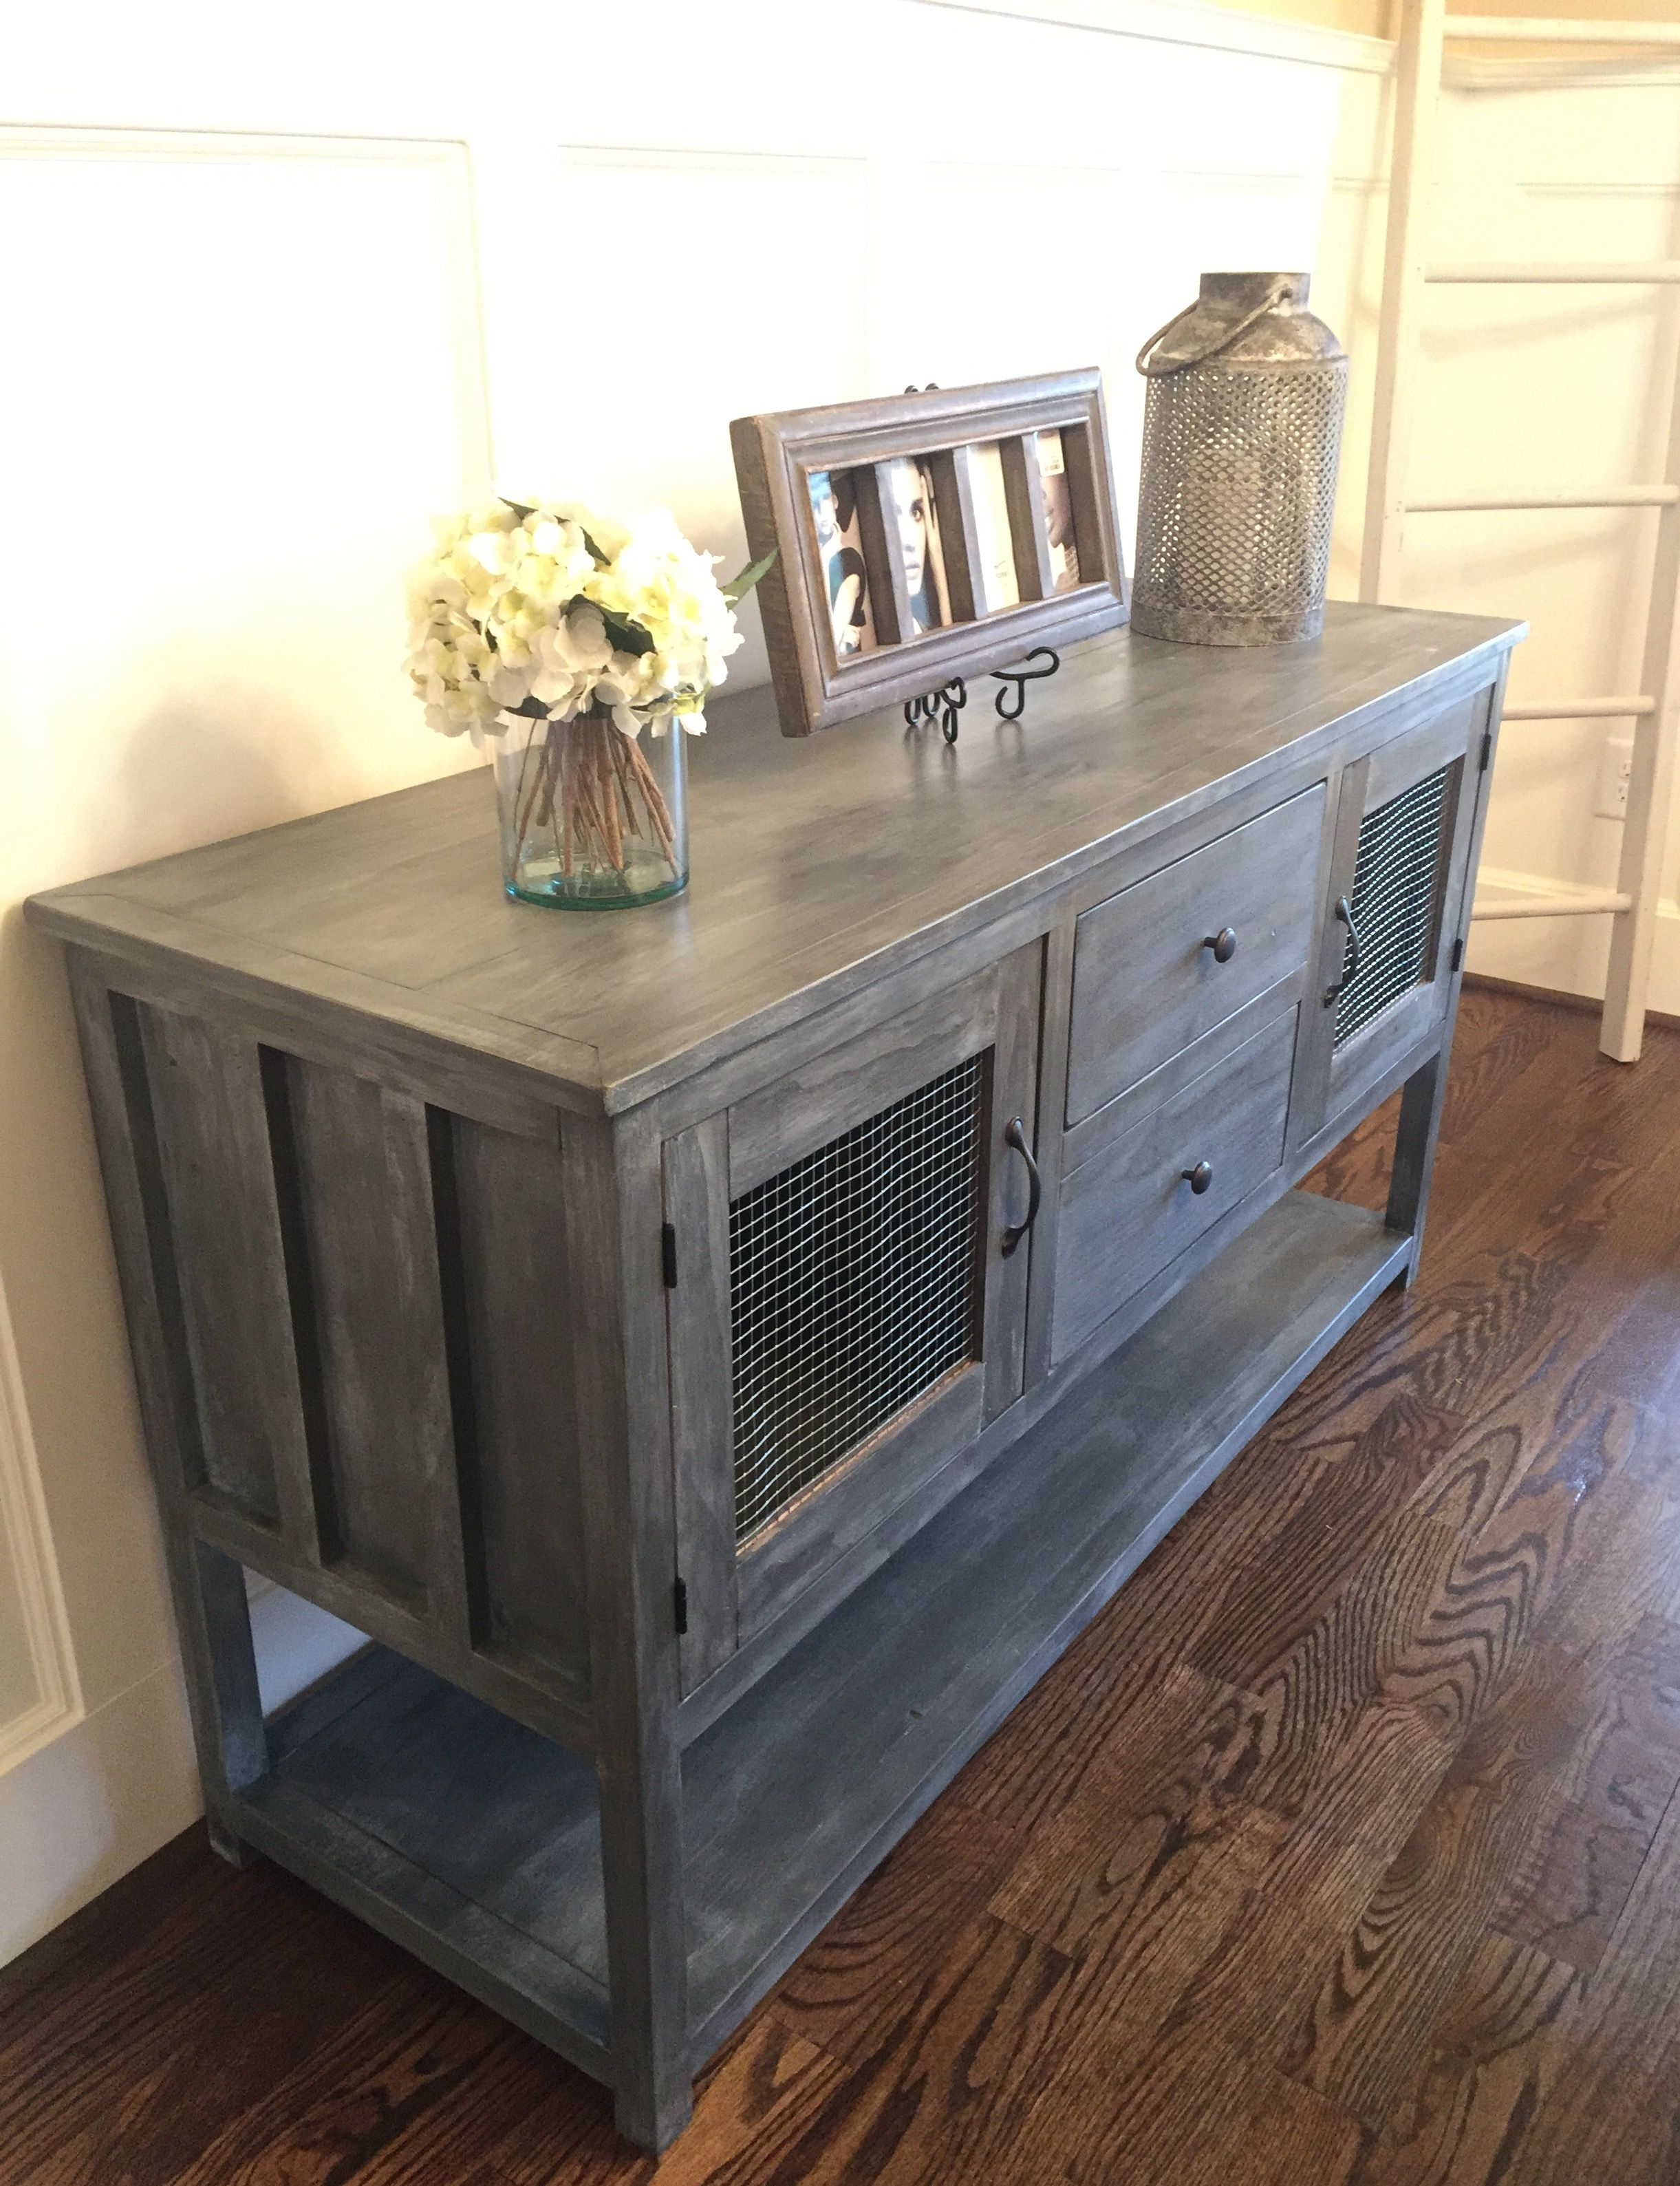 Ana White Farmhouse buffet from altered cabin dresser